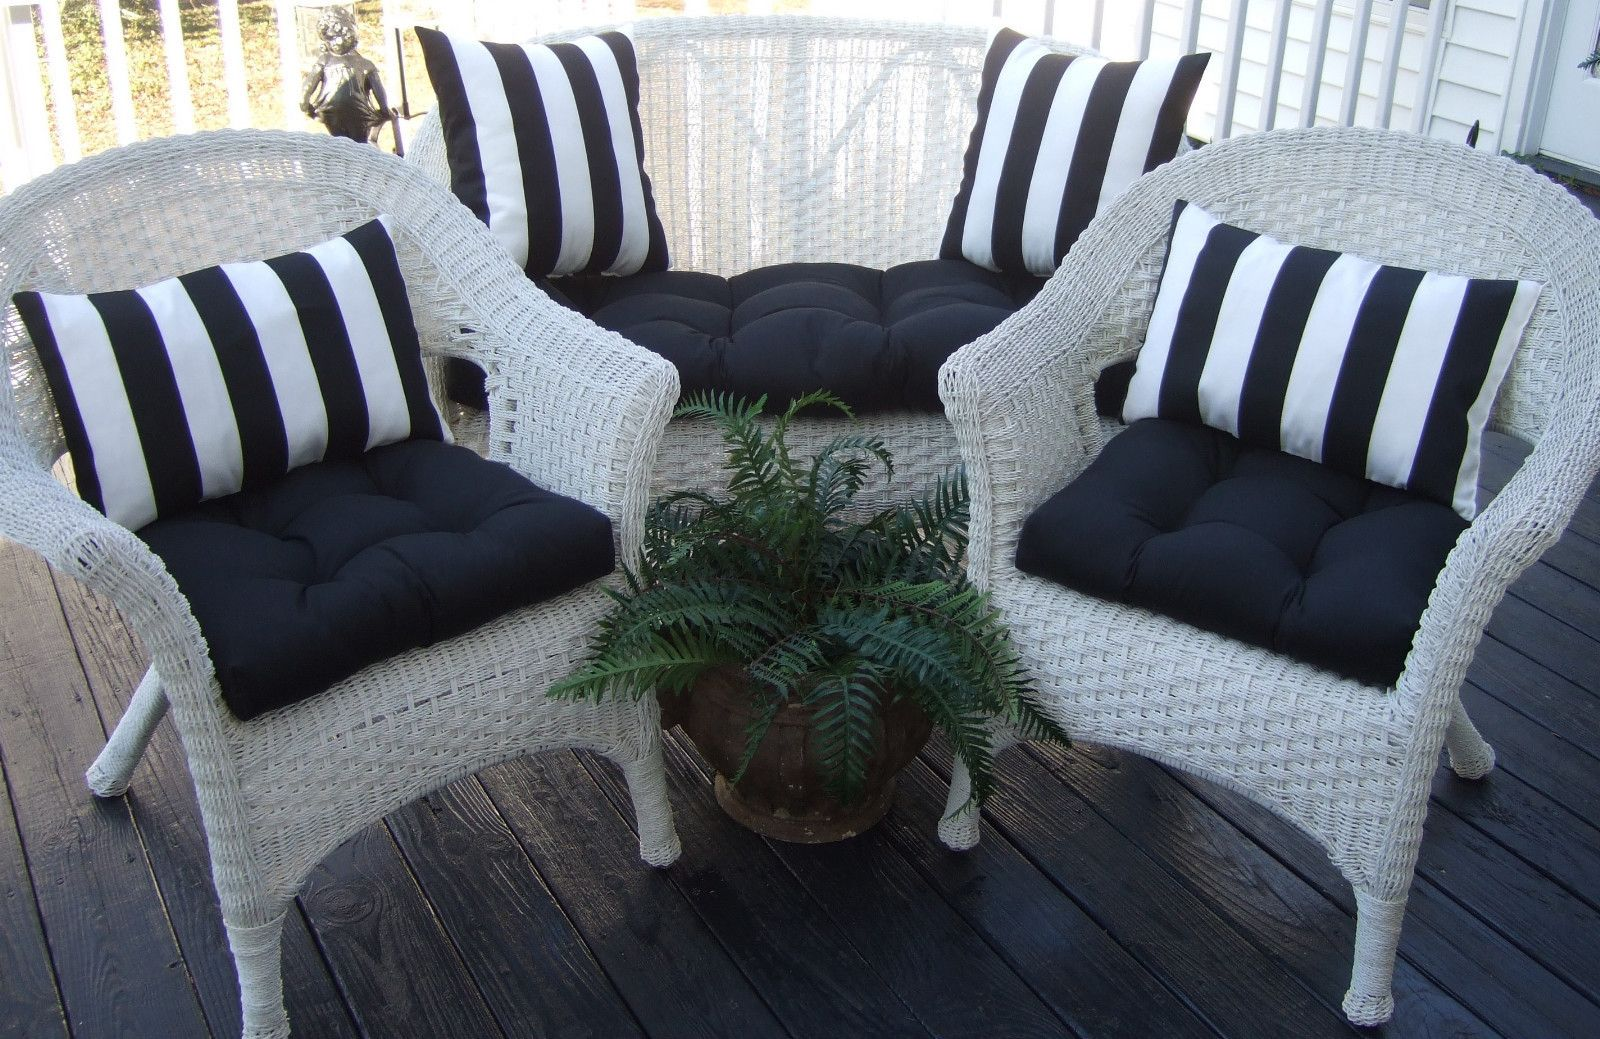 Wicker Outdoor Cushions Black Solid And Black U0026 White Stripe Pillows 7 Pc  Set